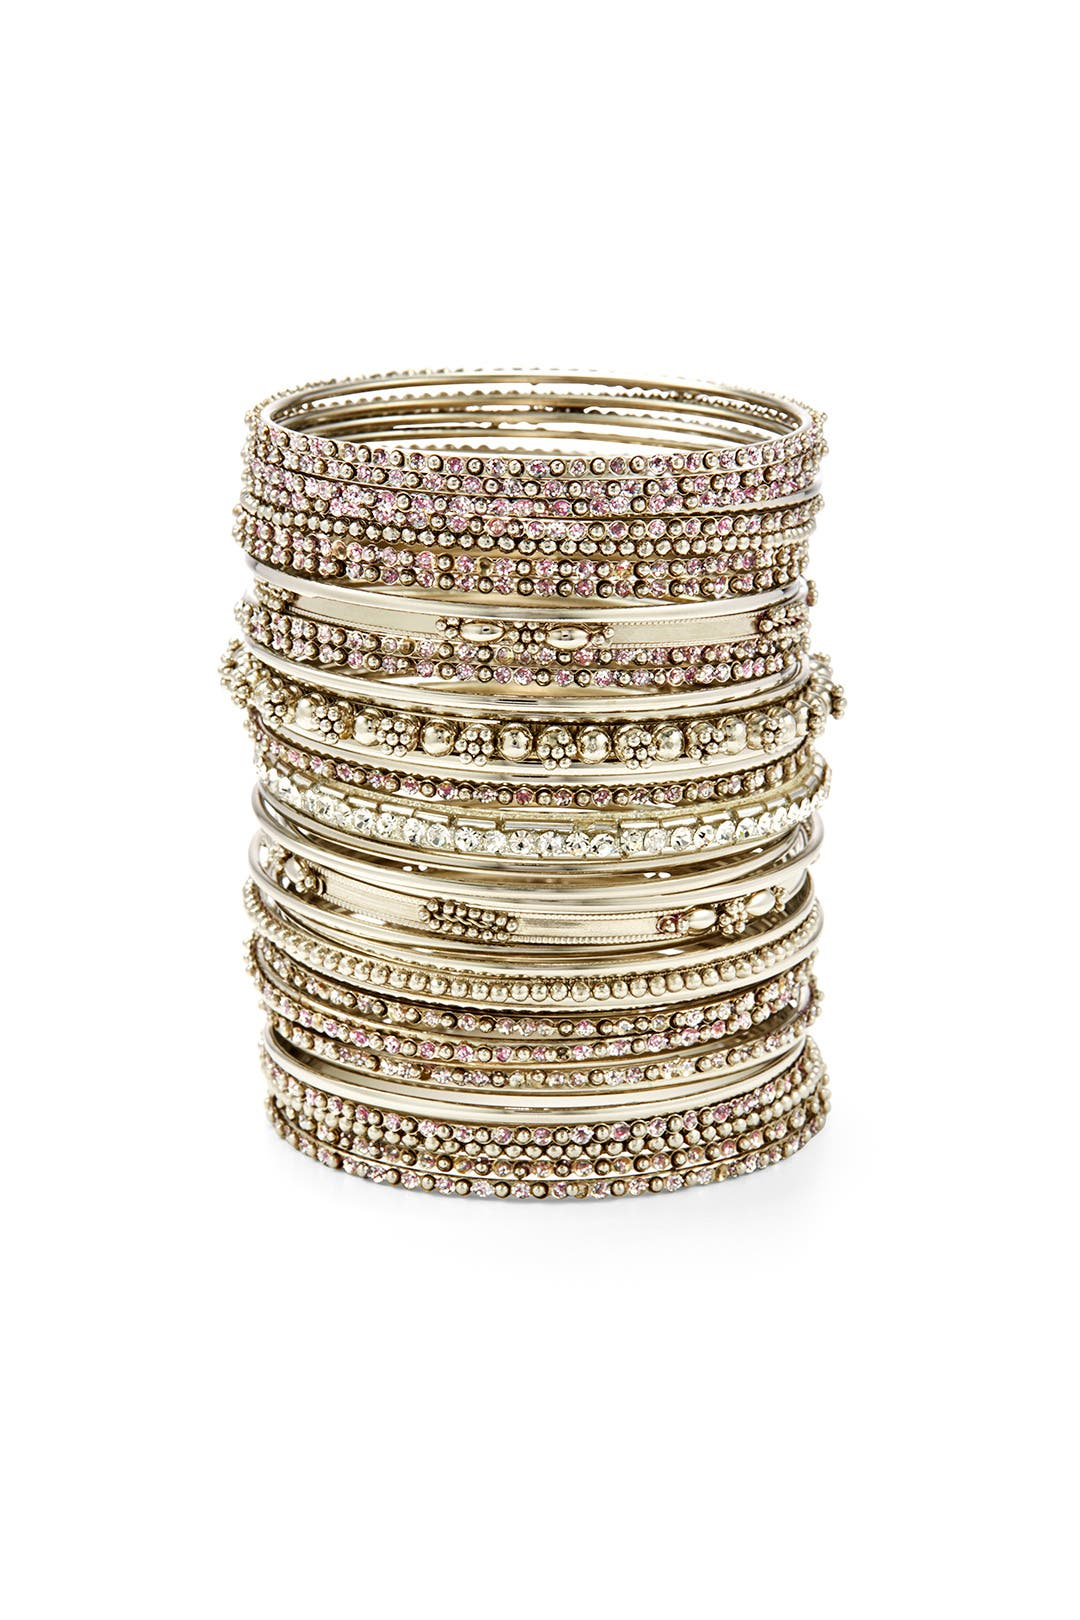 The More the Merrier Bangle Set by Cara Accessories